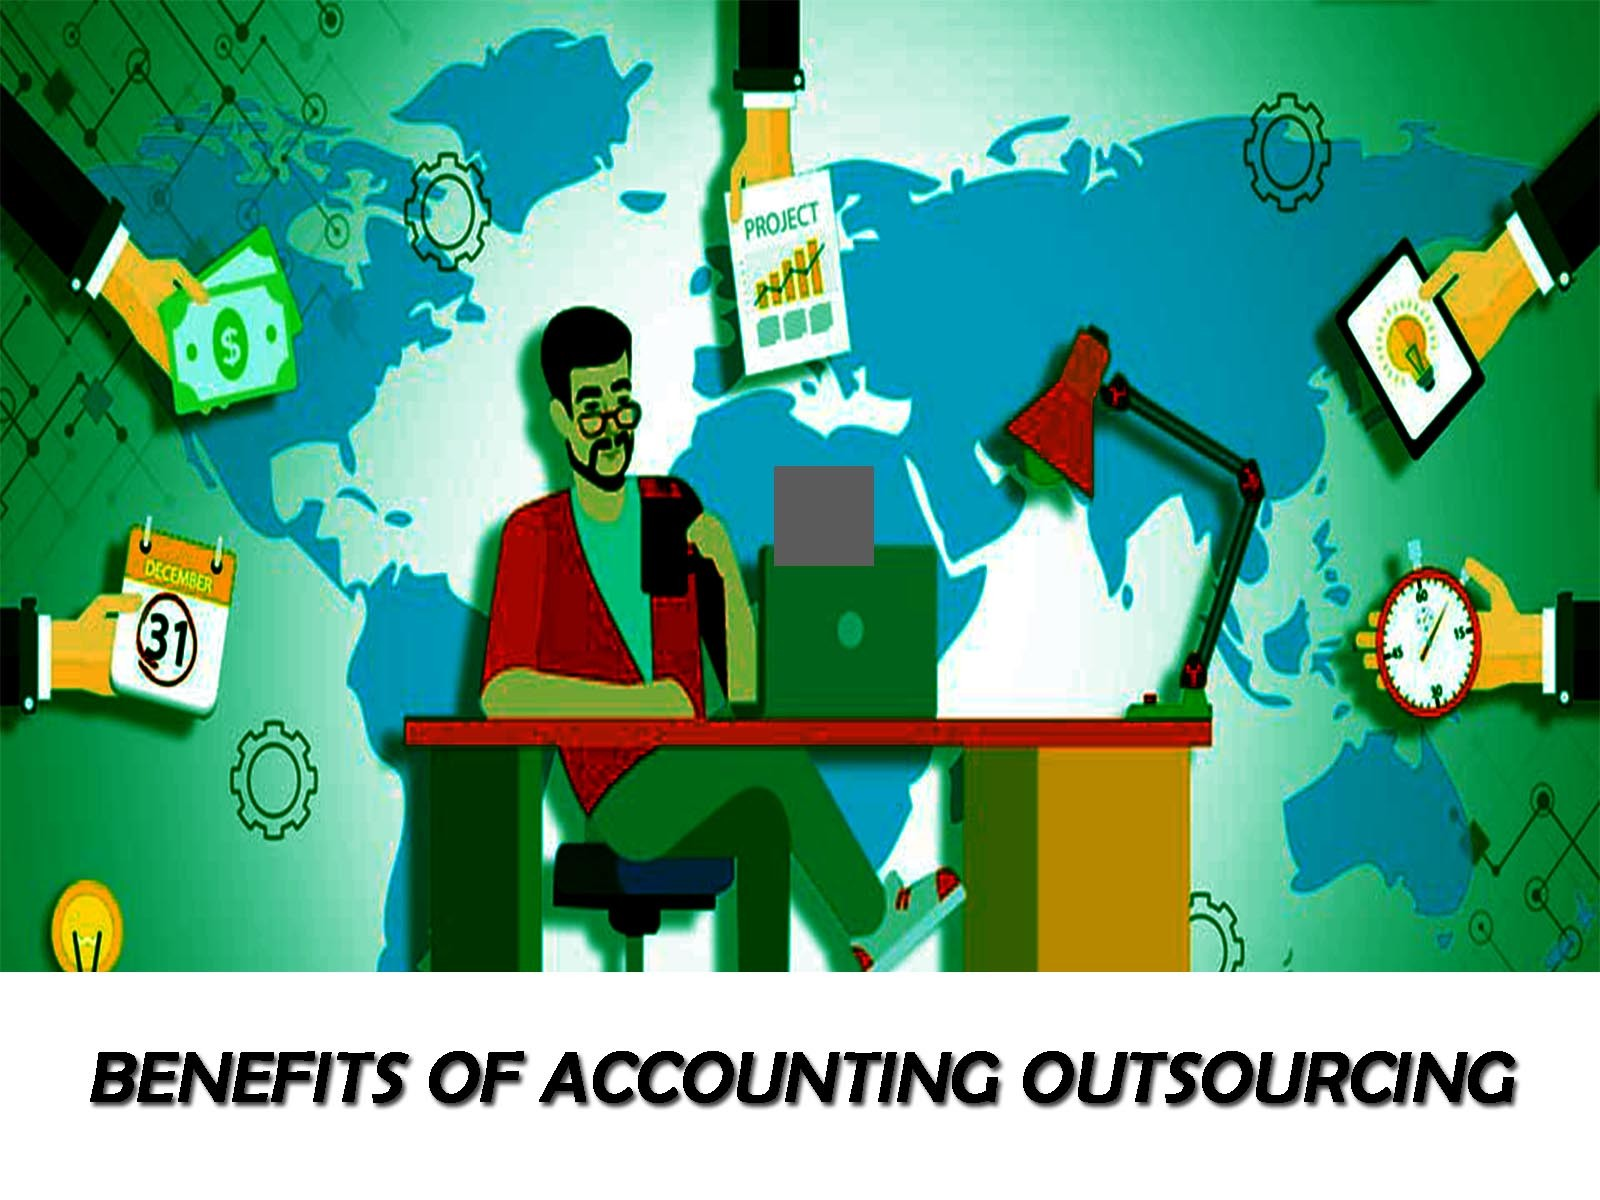 Back-office Accounting Outsourcing | Five Reason Why It Benefit For CPA's, Accounting Firms & Small to Mid-Size Businesses